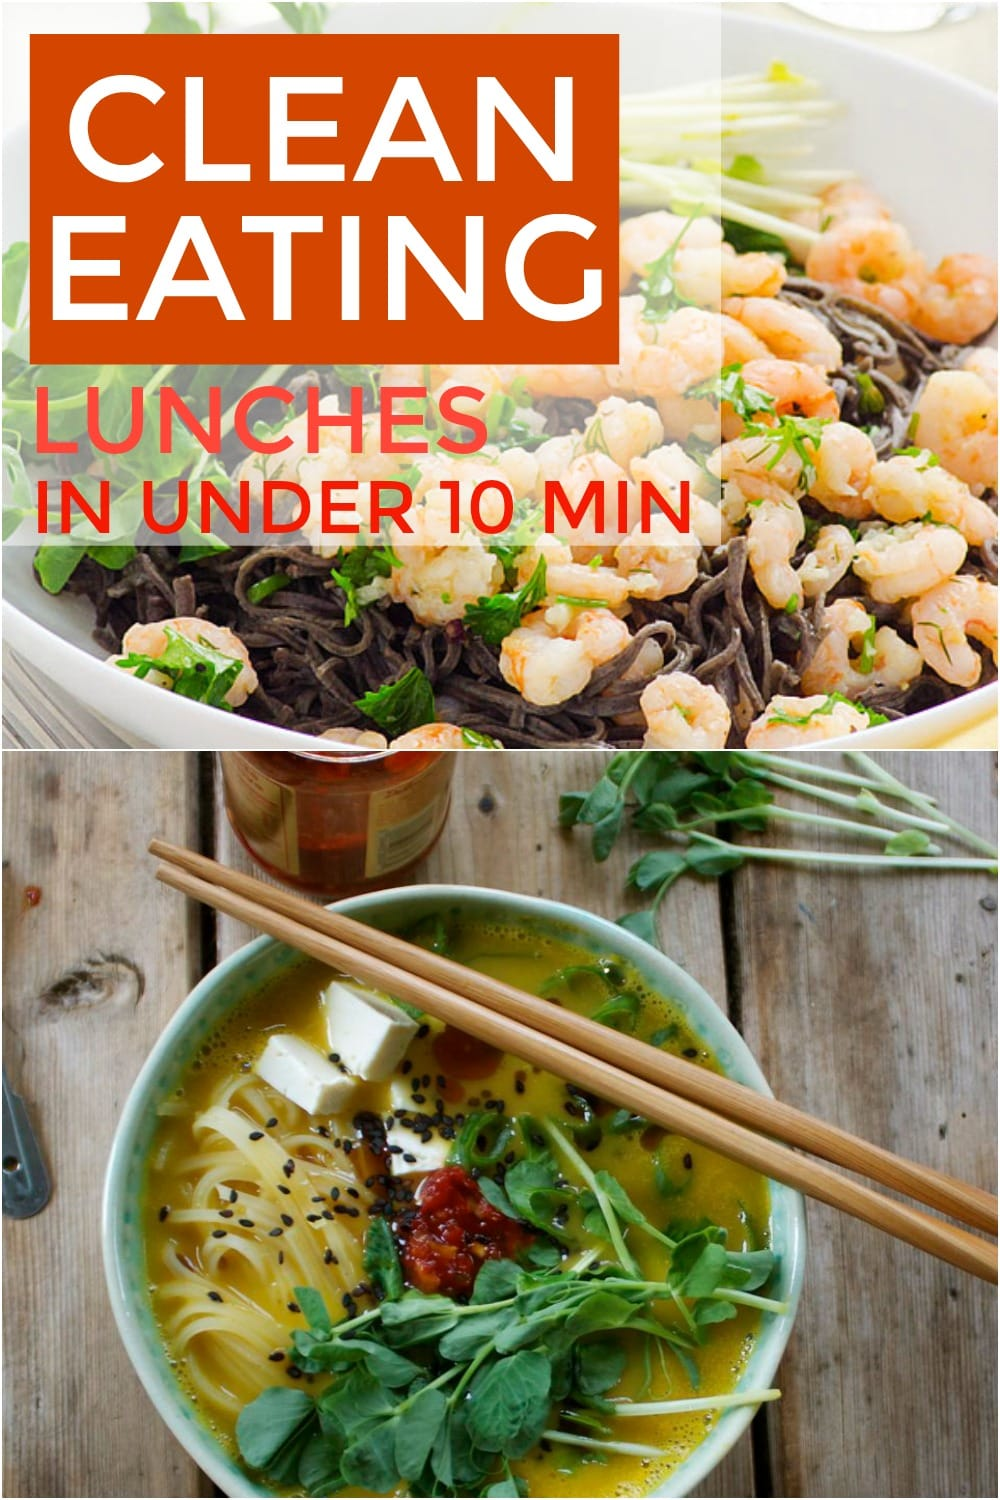 If you feel like healthy meals often take too long to cook then check out these recipes. These clean eating recipes are perfect for a quick lunch!